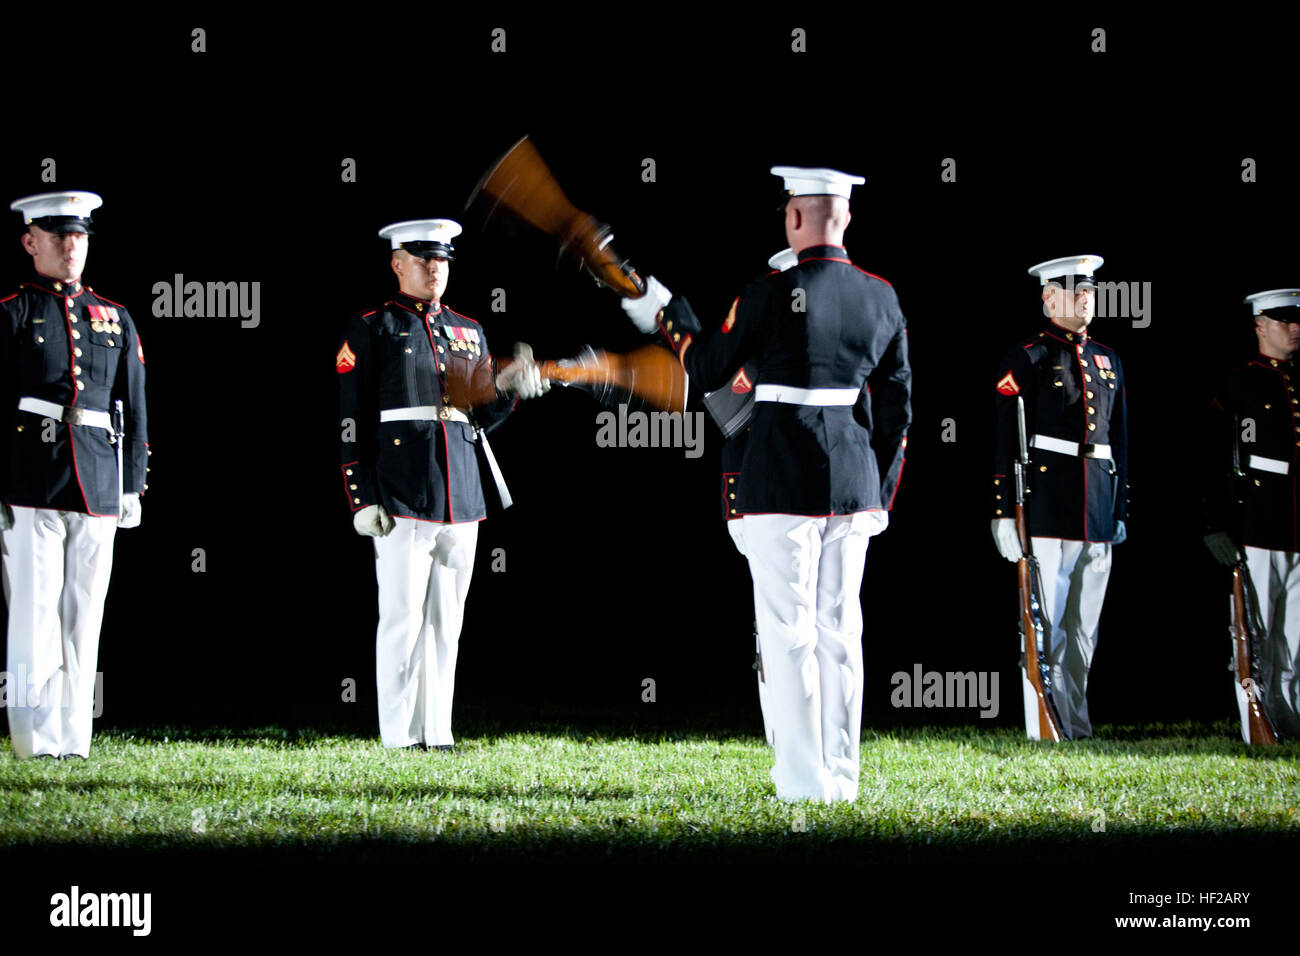 Members of the U.S. Marine Corps Silent Drill Platoon perform during an Evening Parade at Marine Barracks Washington Stock Photo